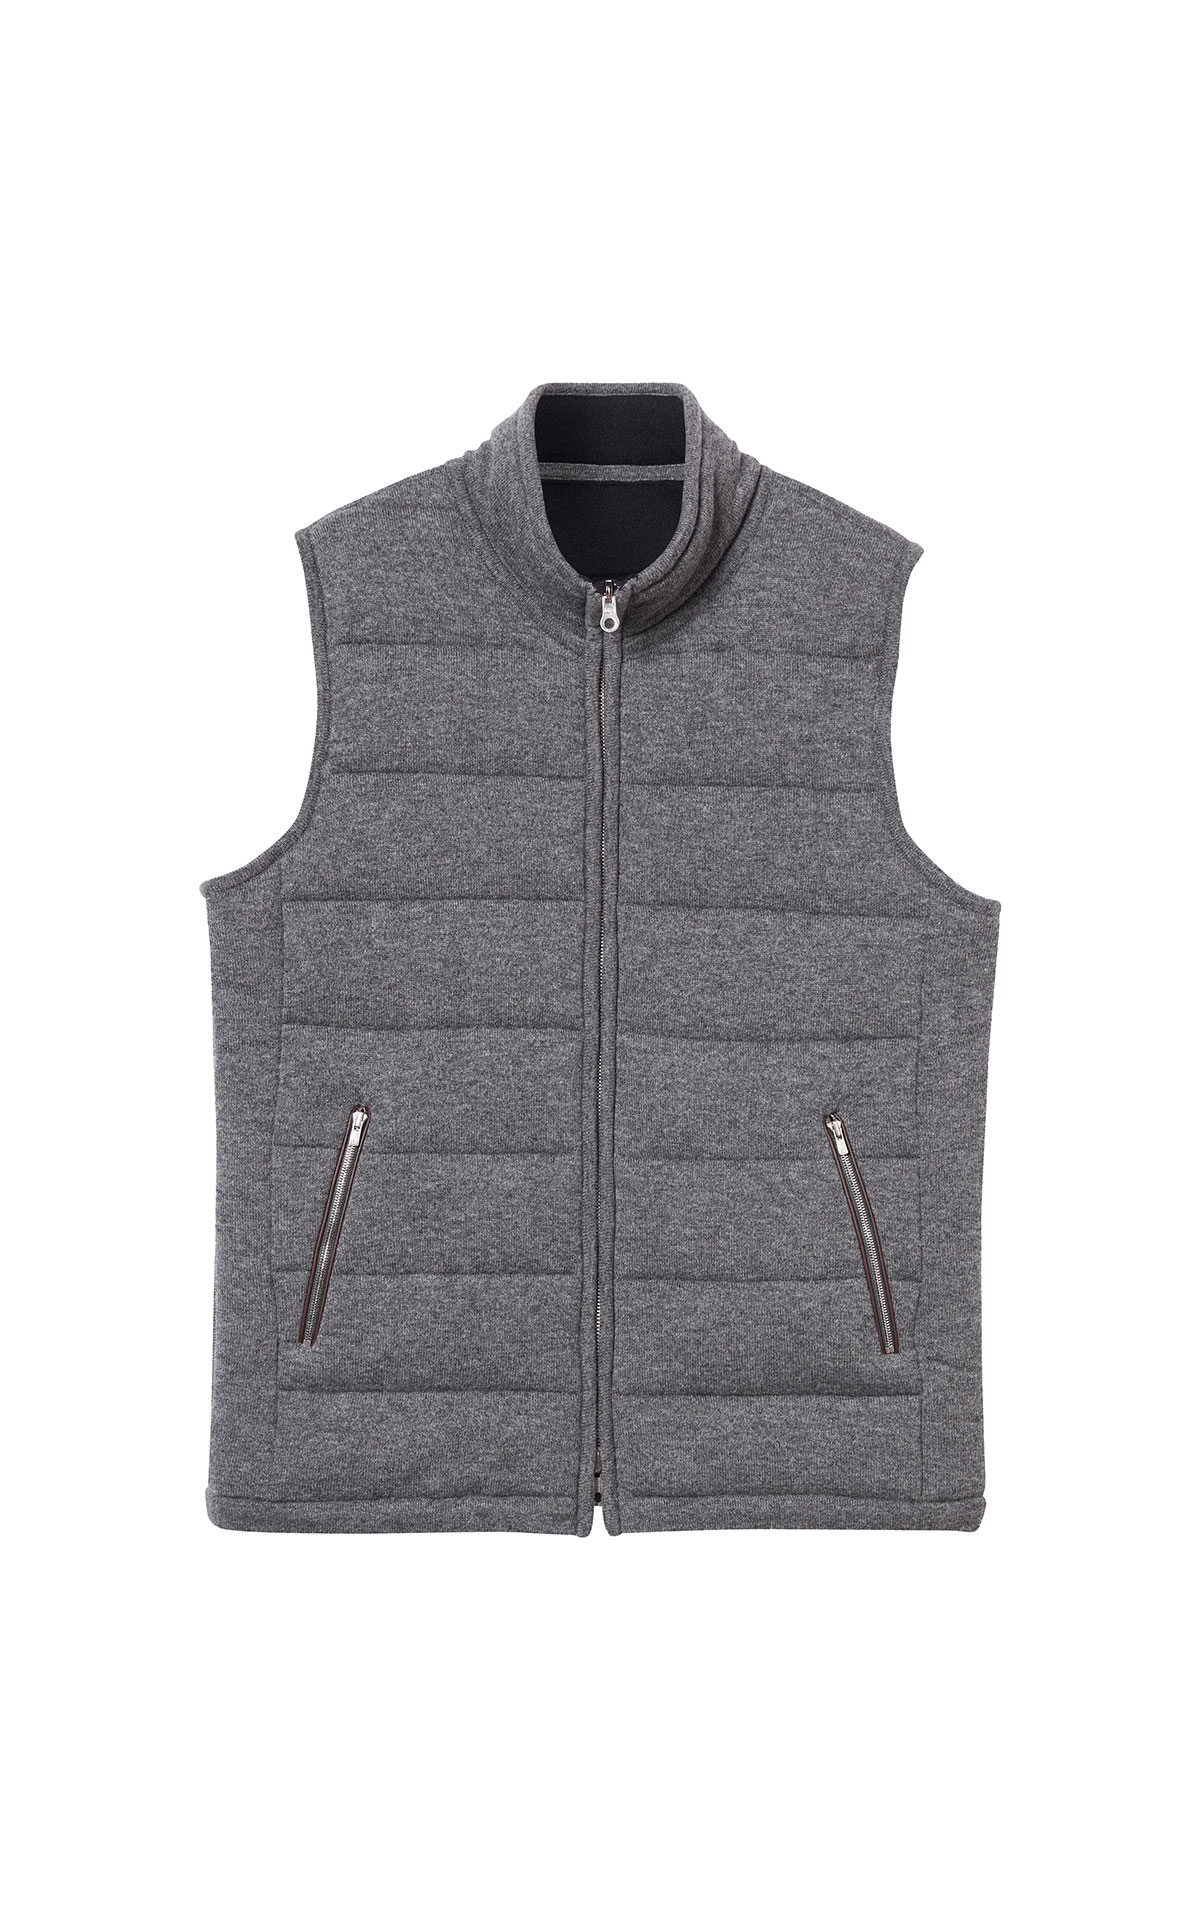 N. Peal Mall quilted gilet from Bicester Village